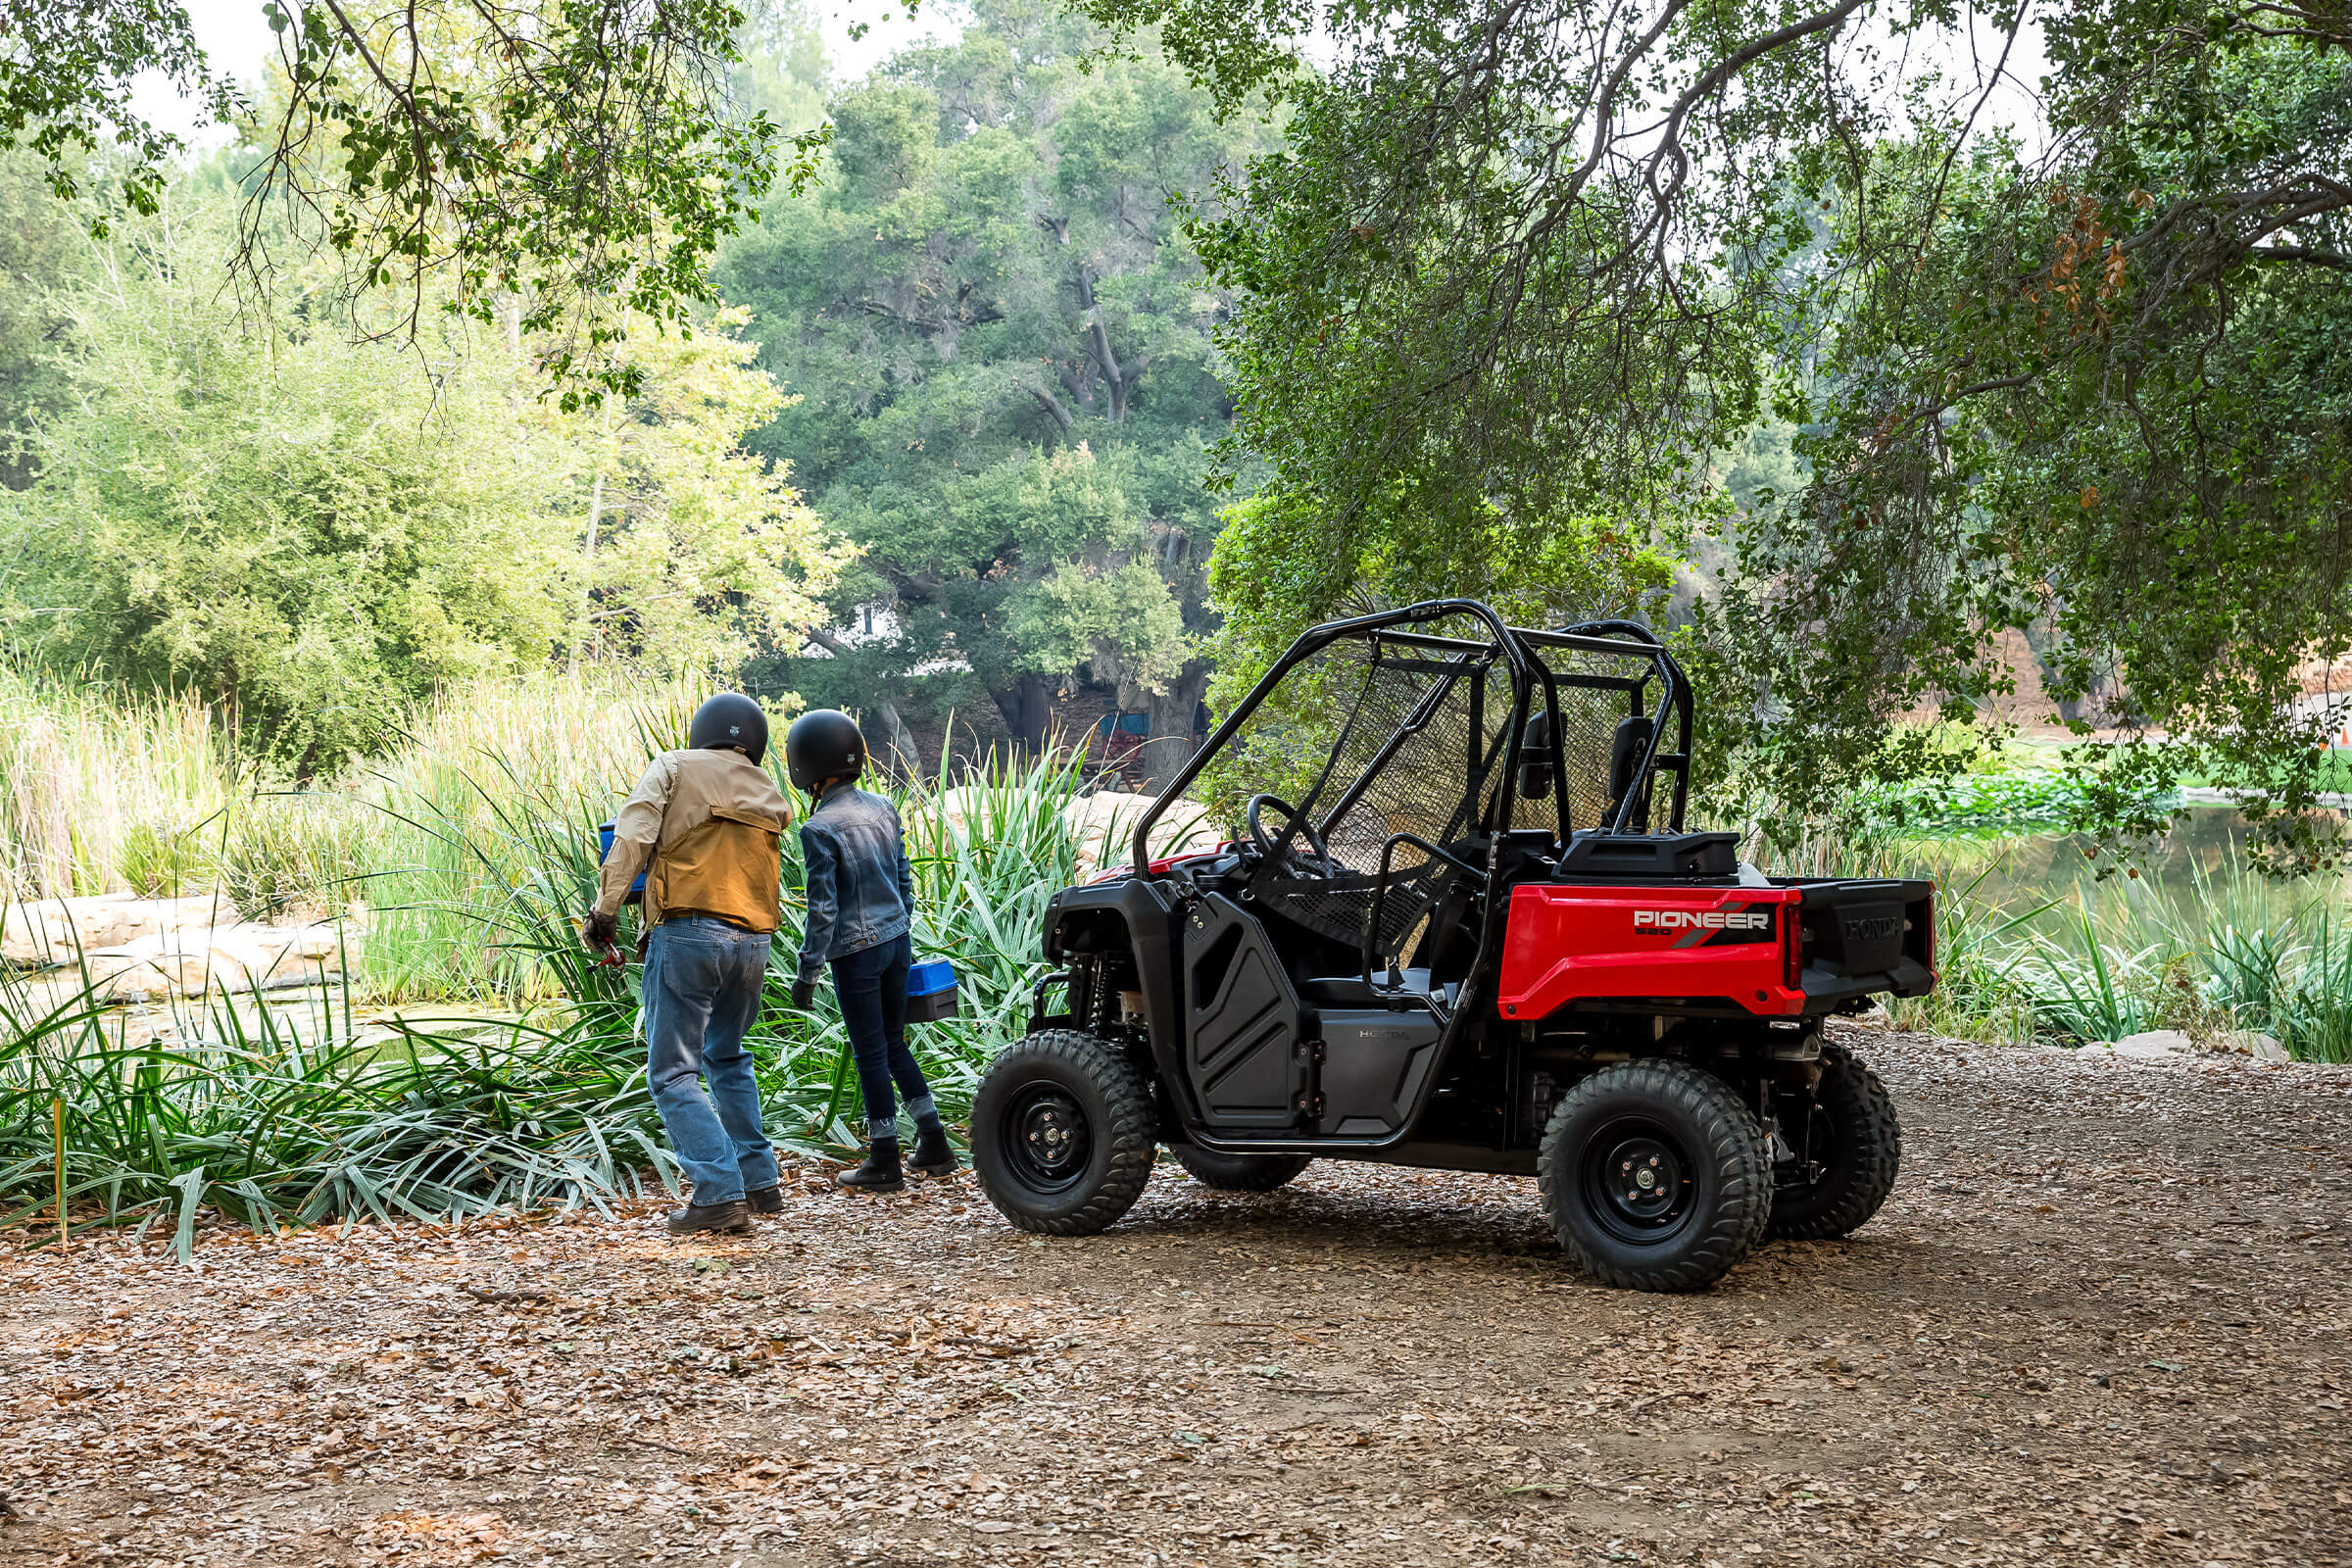 2021 Honda Pioneer 520 in Delano, California - Photo 2